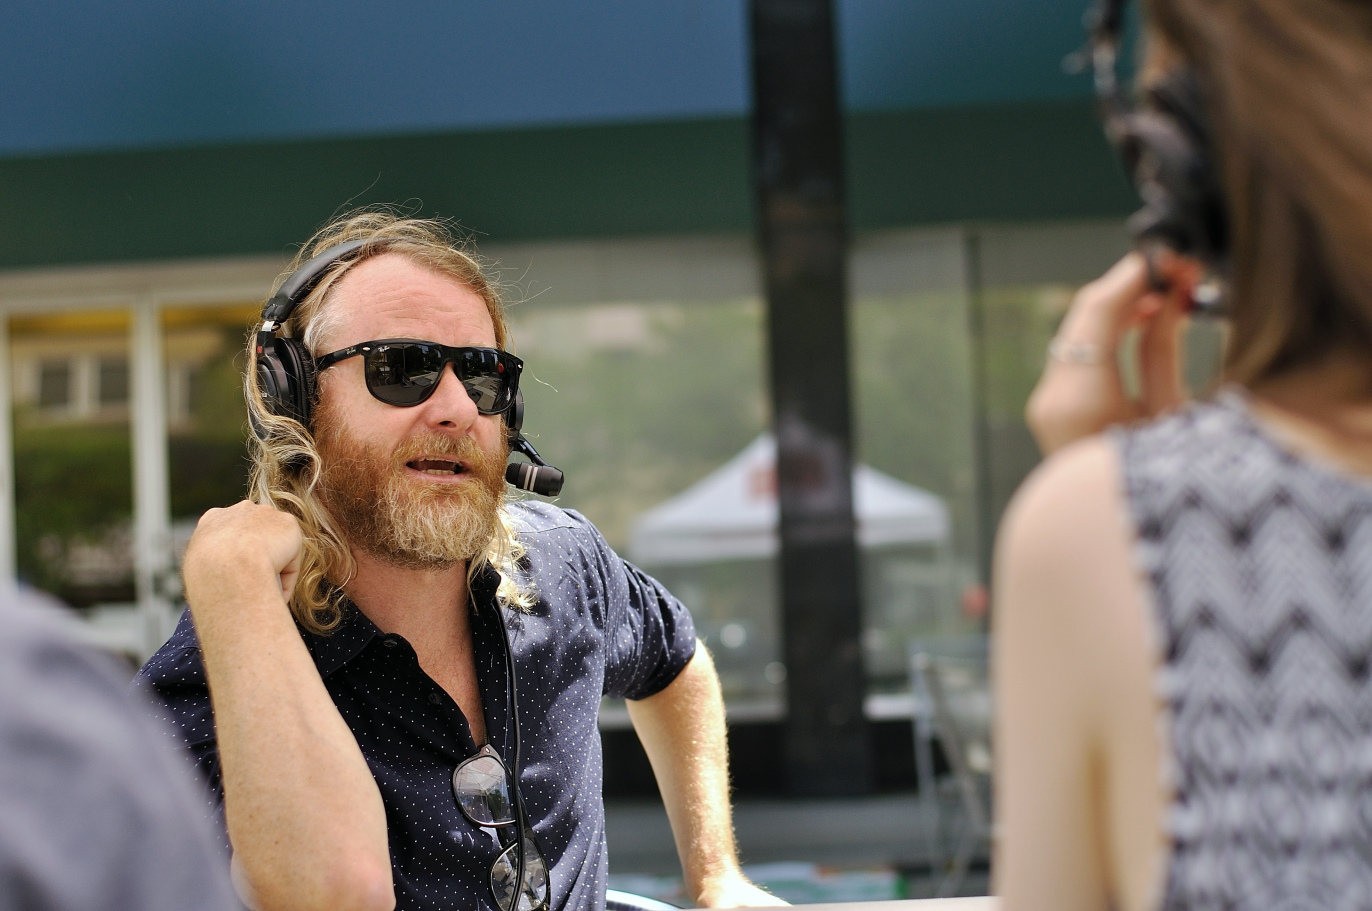 Kristin Archer interviewing Matt Berninger of The National and their manager Brandon Reid. Photo by Lisa Vuyk